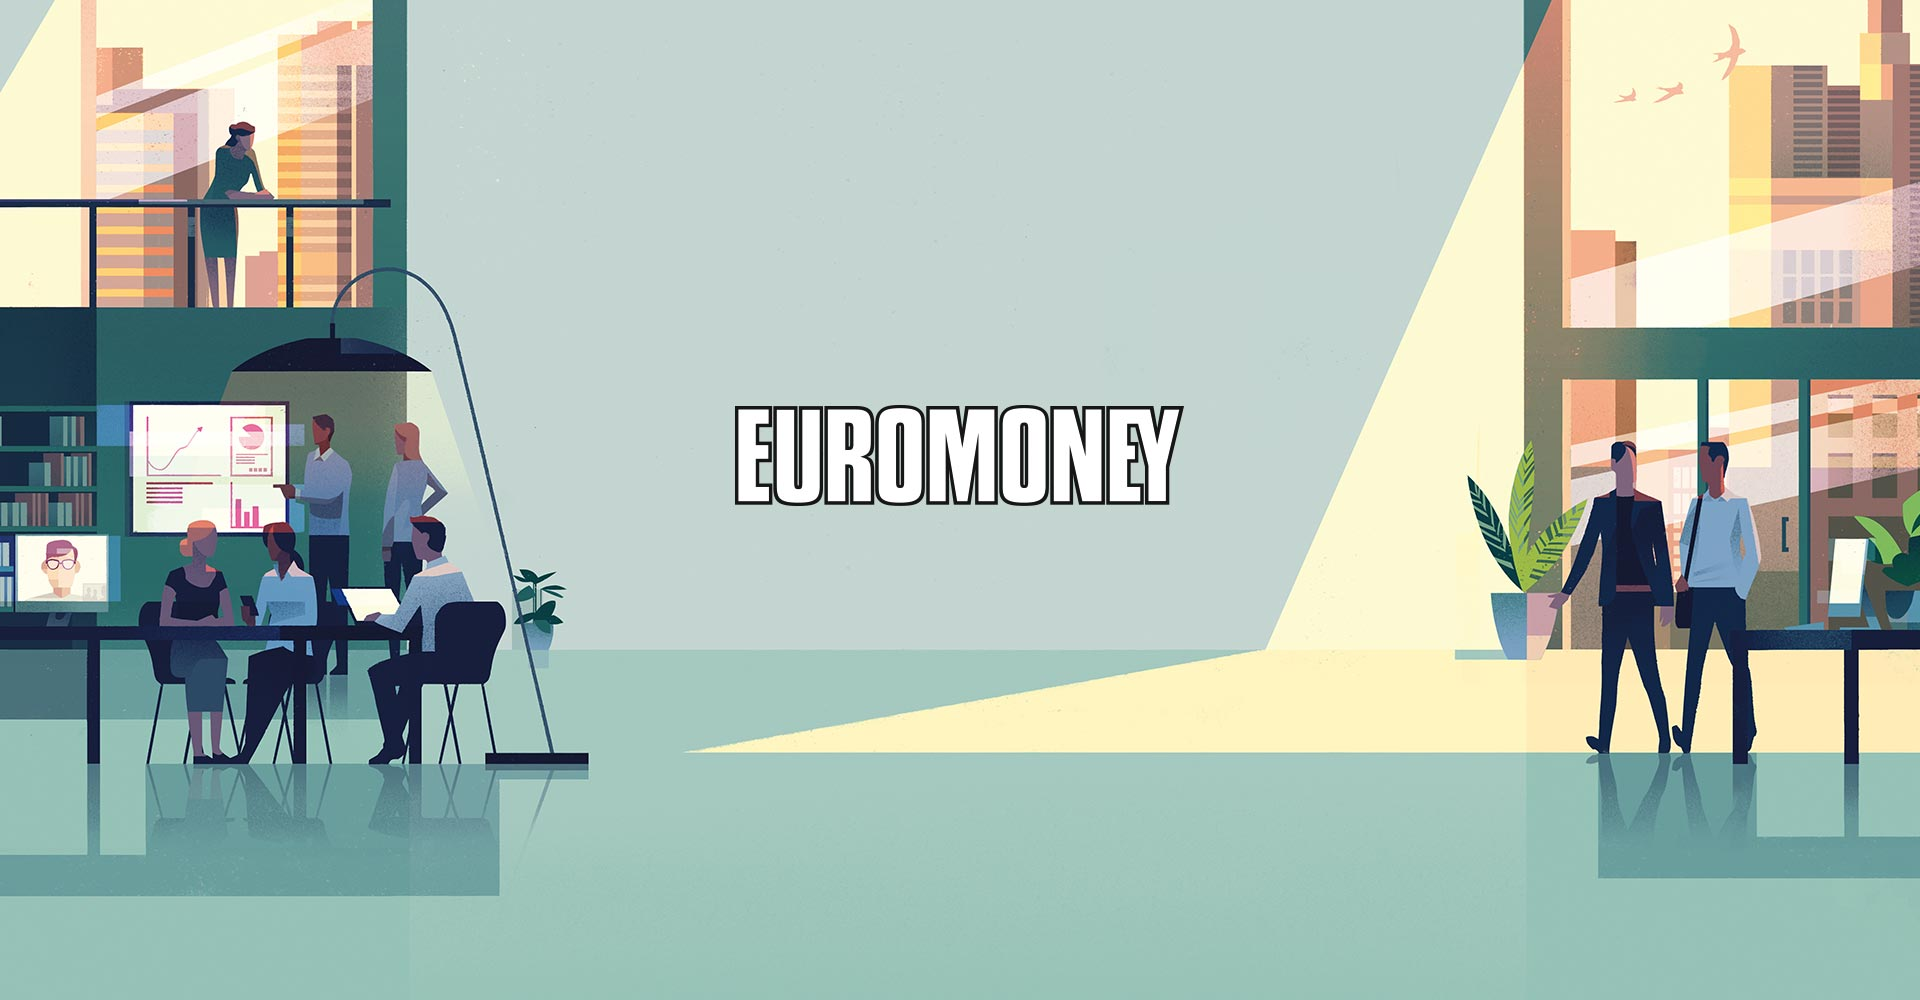 Euromoney-Design-Work-by-Image-Creative-Design